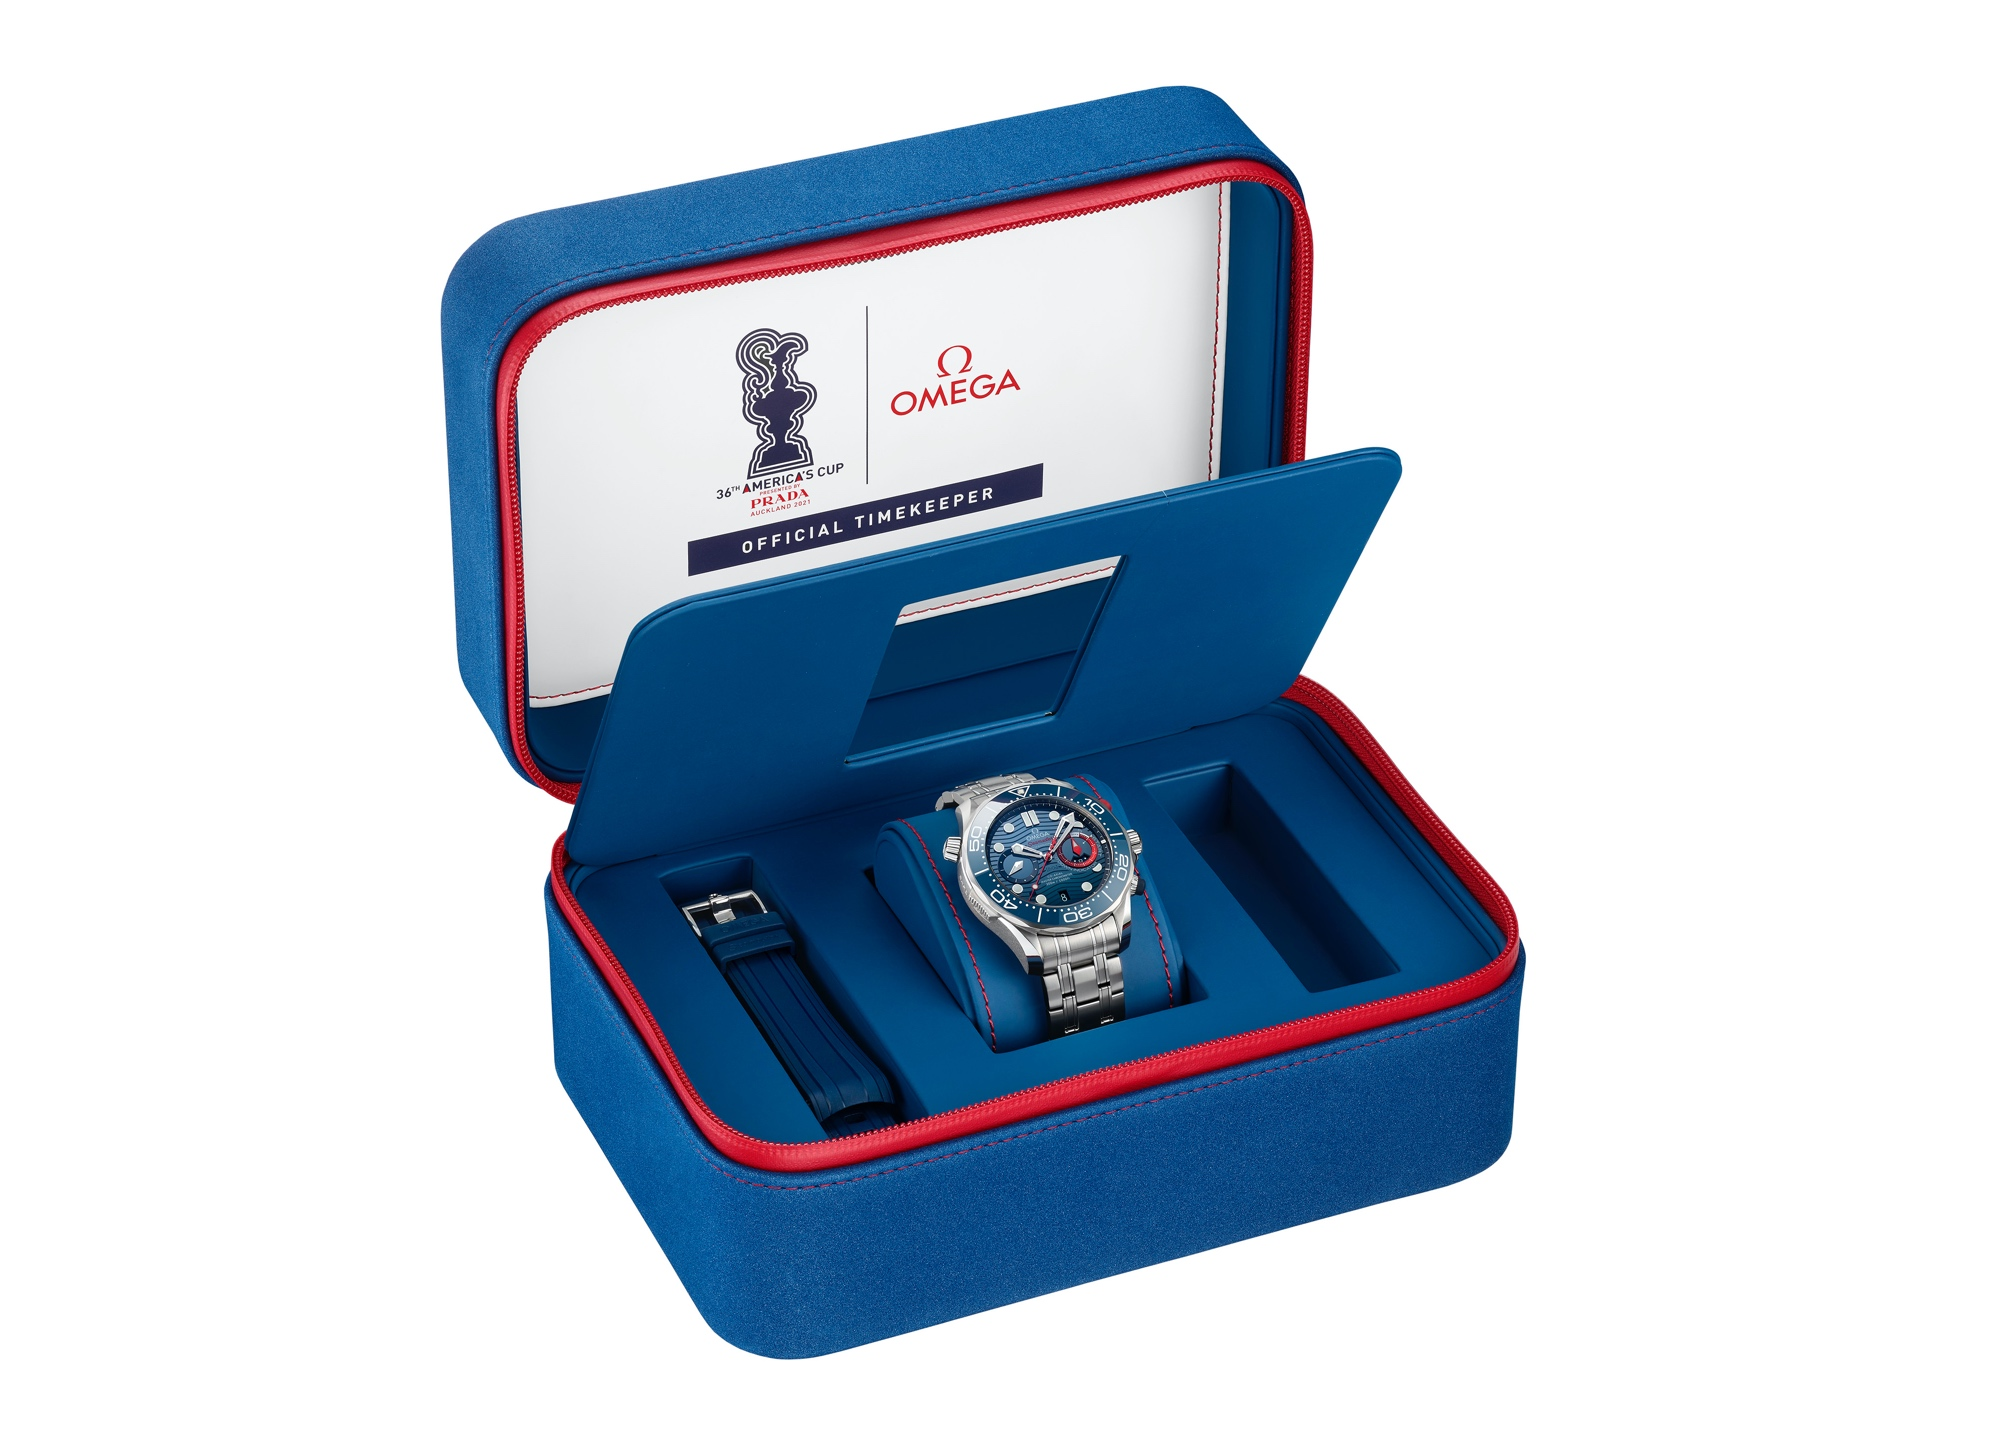 Omega Seamaster Diver 300M Chronograph Americas Cup - box